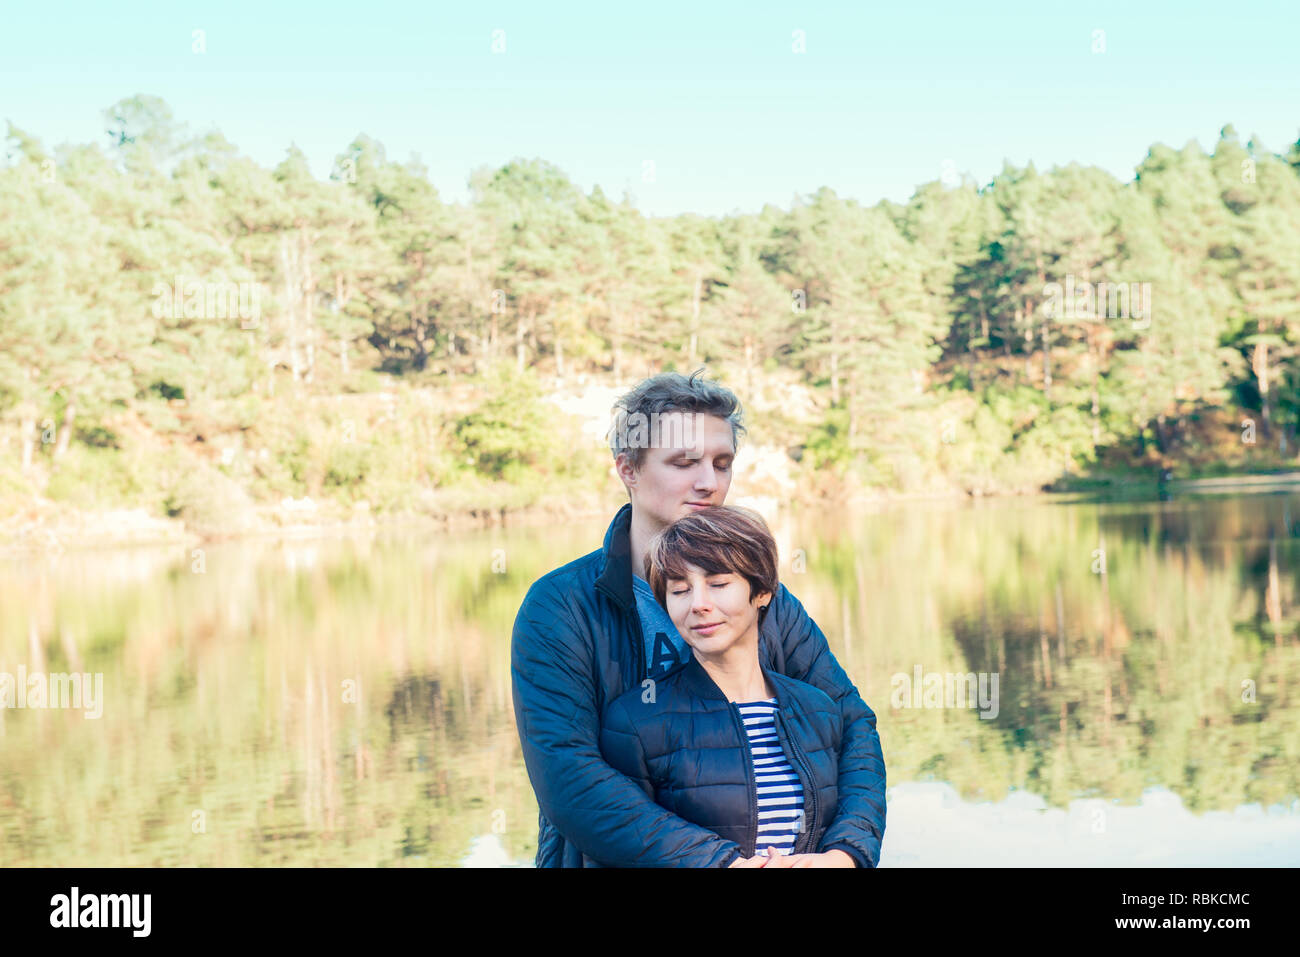 Two attractive dreamy people, couple in casual outfit at wild forest near water. Idyllic calm peaceful life style person freedom concept. Selective fo Stock Photo